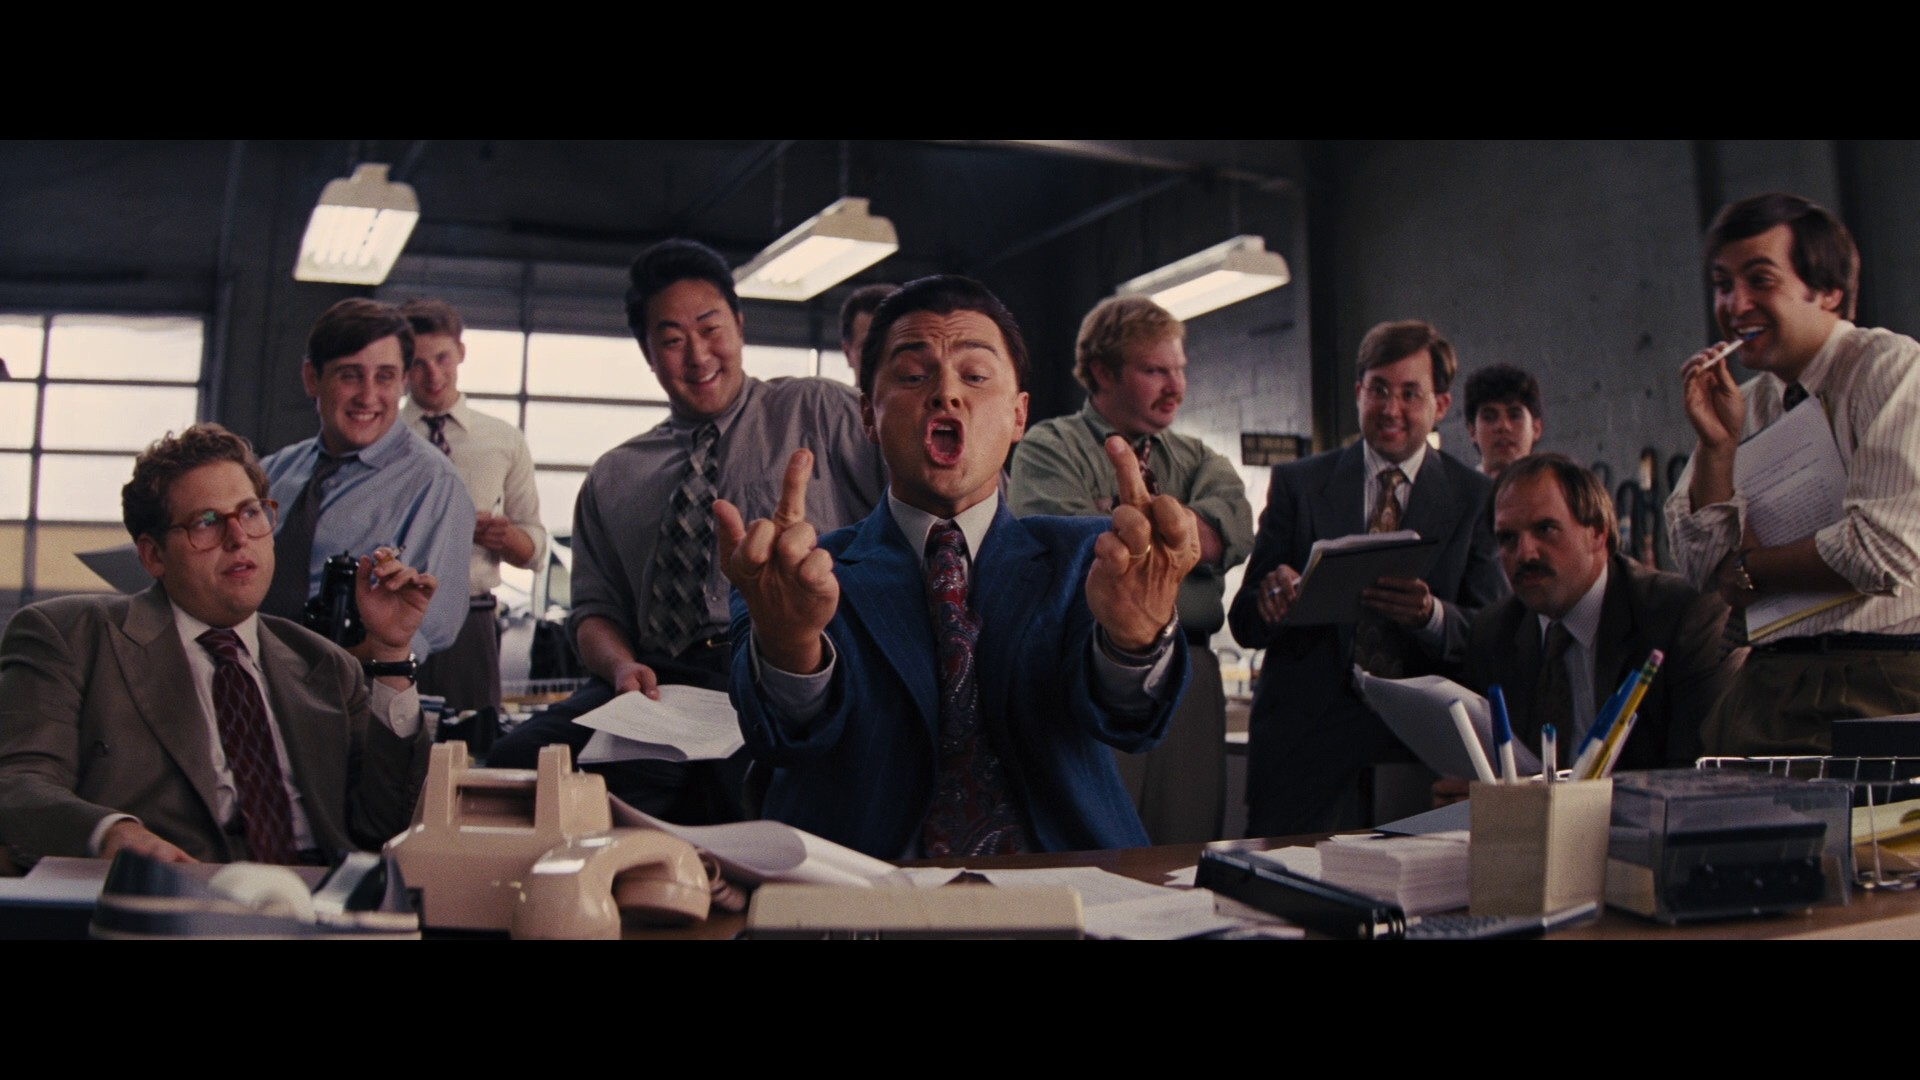 The Wolf Of Wall Street Wallpaper (89+ Immagini. Old Engagement Rings. Curtain Rings. Big Heart Engagement Rings. Blush Pink Sapphire Rings. Diana Engagement Rings. December Birthstone Engagement Rings. Purple Diamond Rings. 1.25 Rings